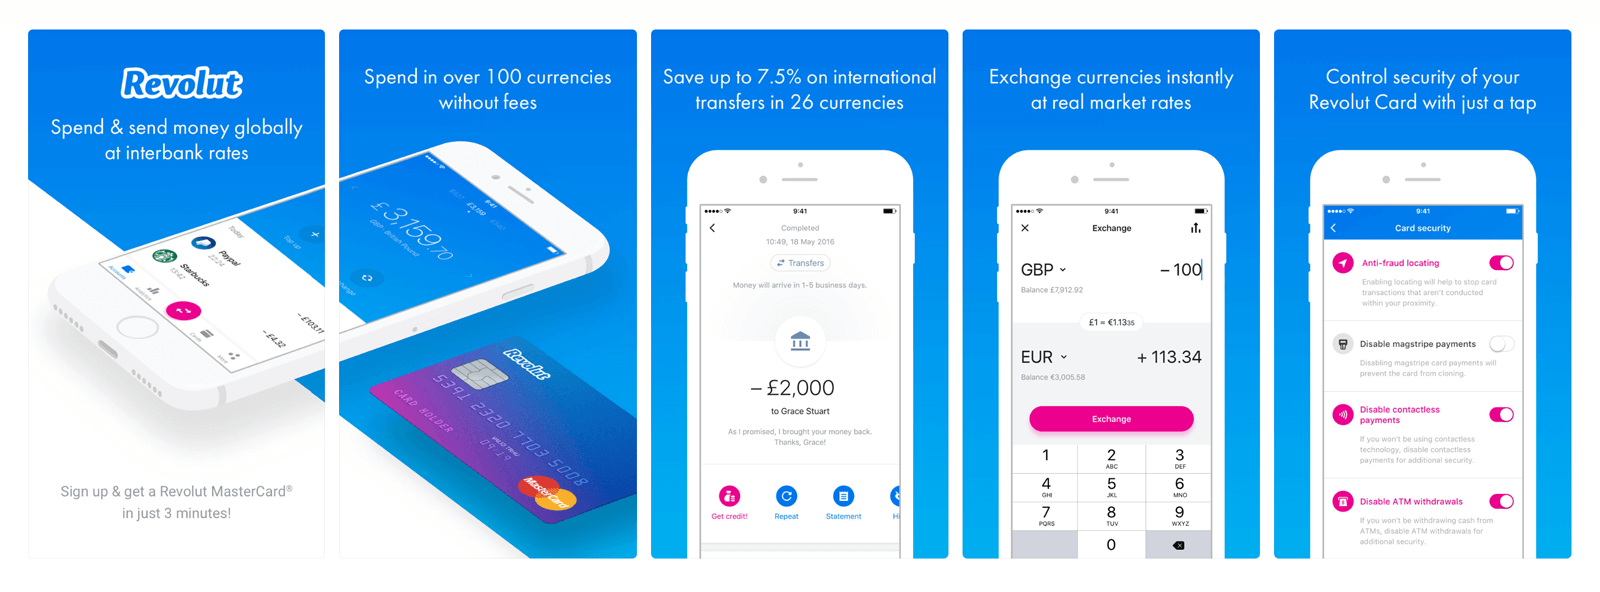 Revolut how to transfer cryptocurrency